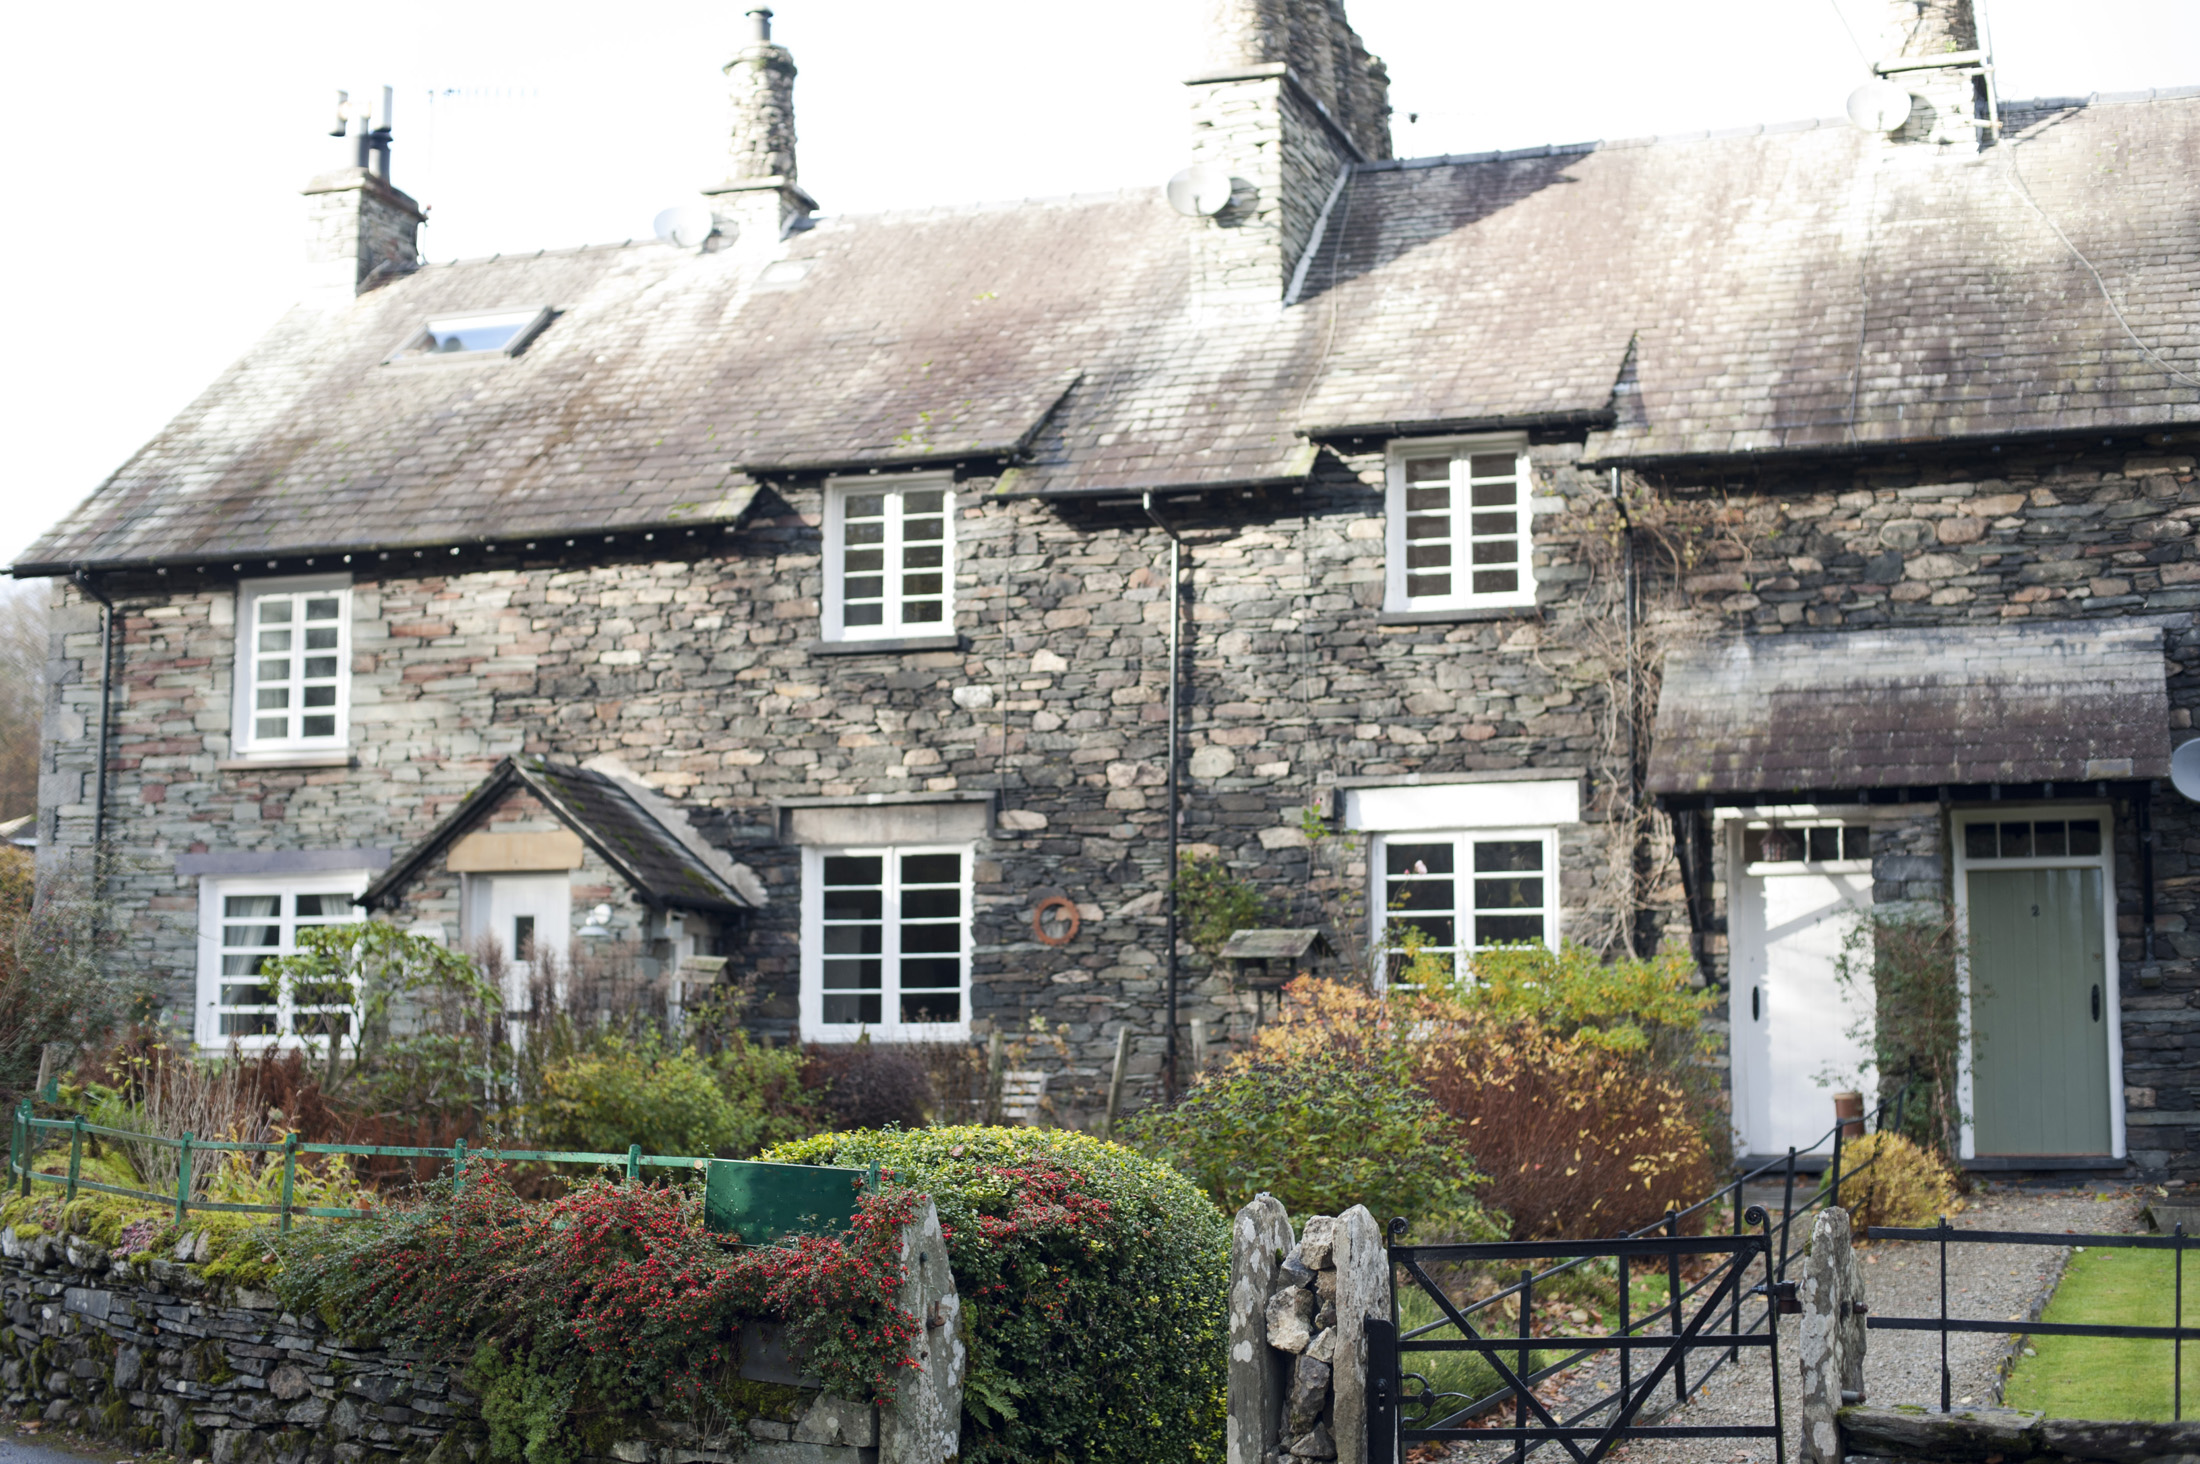 Row of old quaint stone cottages at Skelwith Bridge in the Lake District in Cumbria, an area popular with tourists